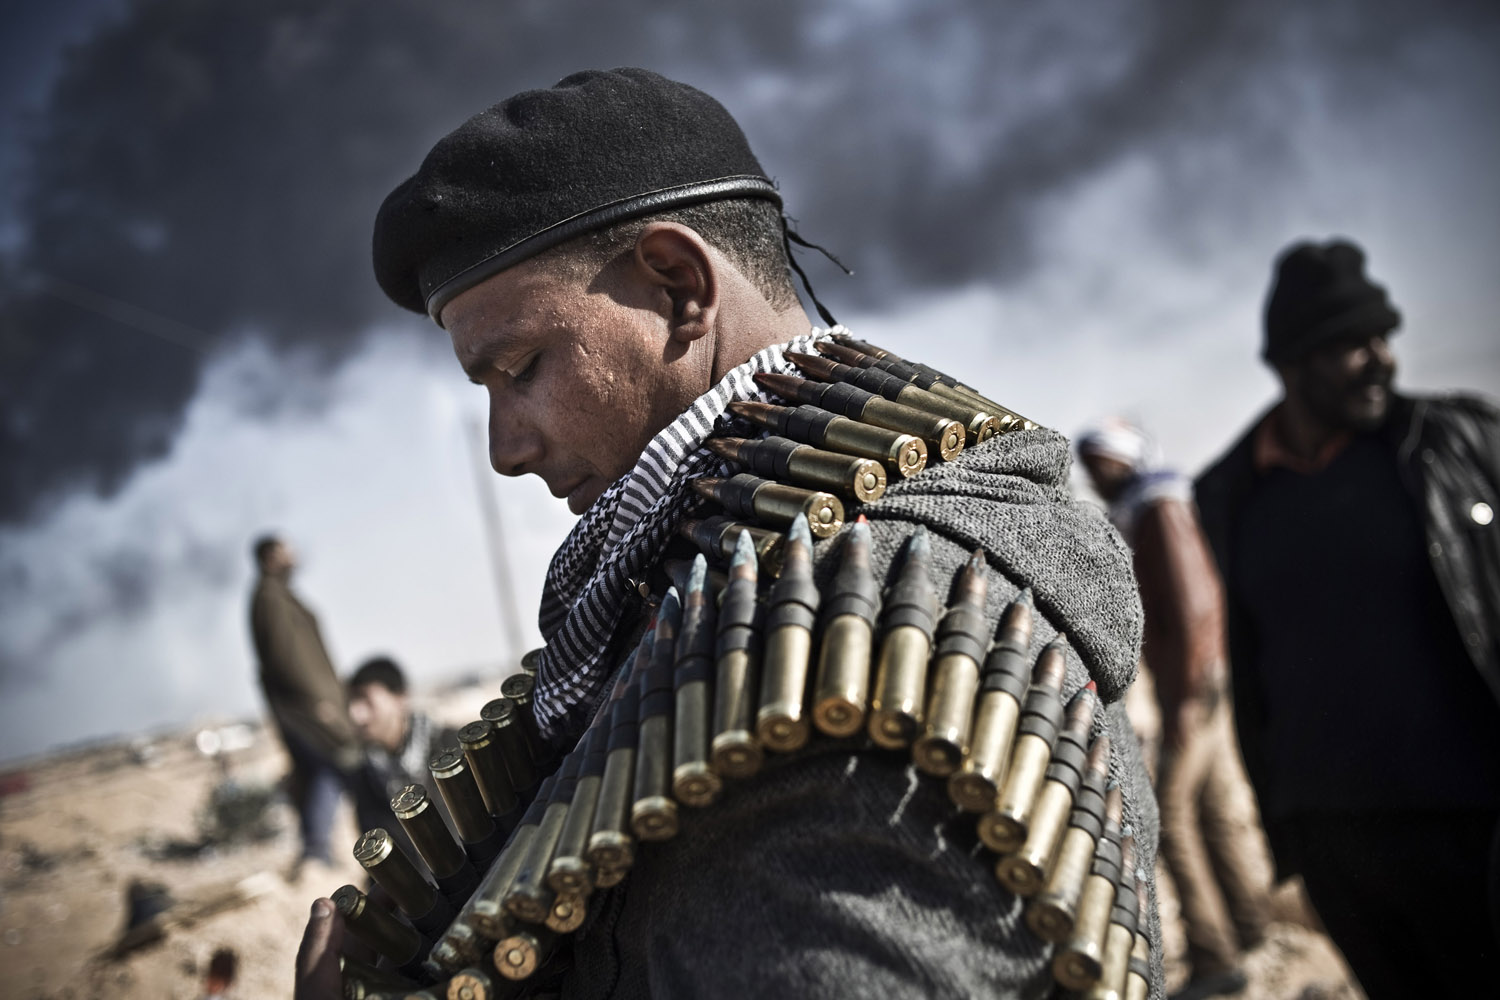 March 11, 2011. An opposition fighter with an ammunition belt in Ras Lanuf, Libya.